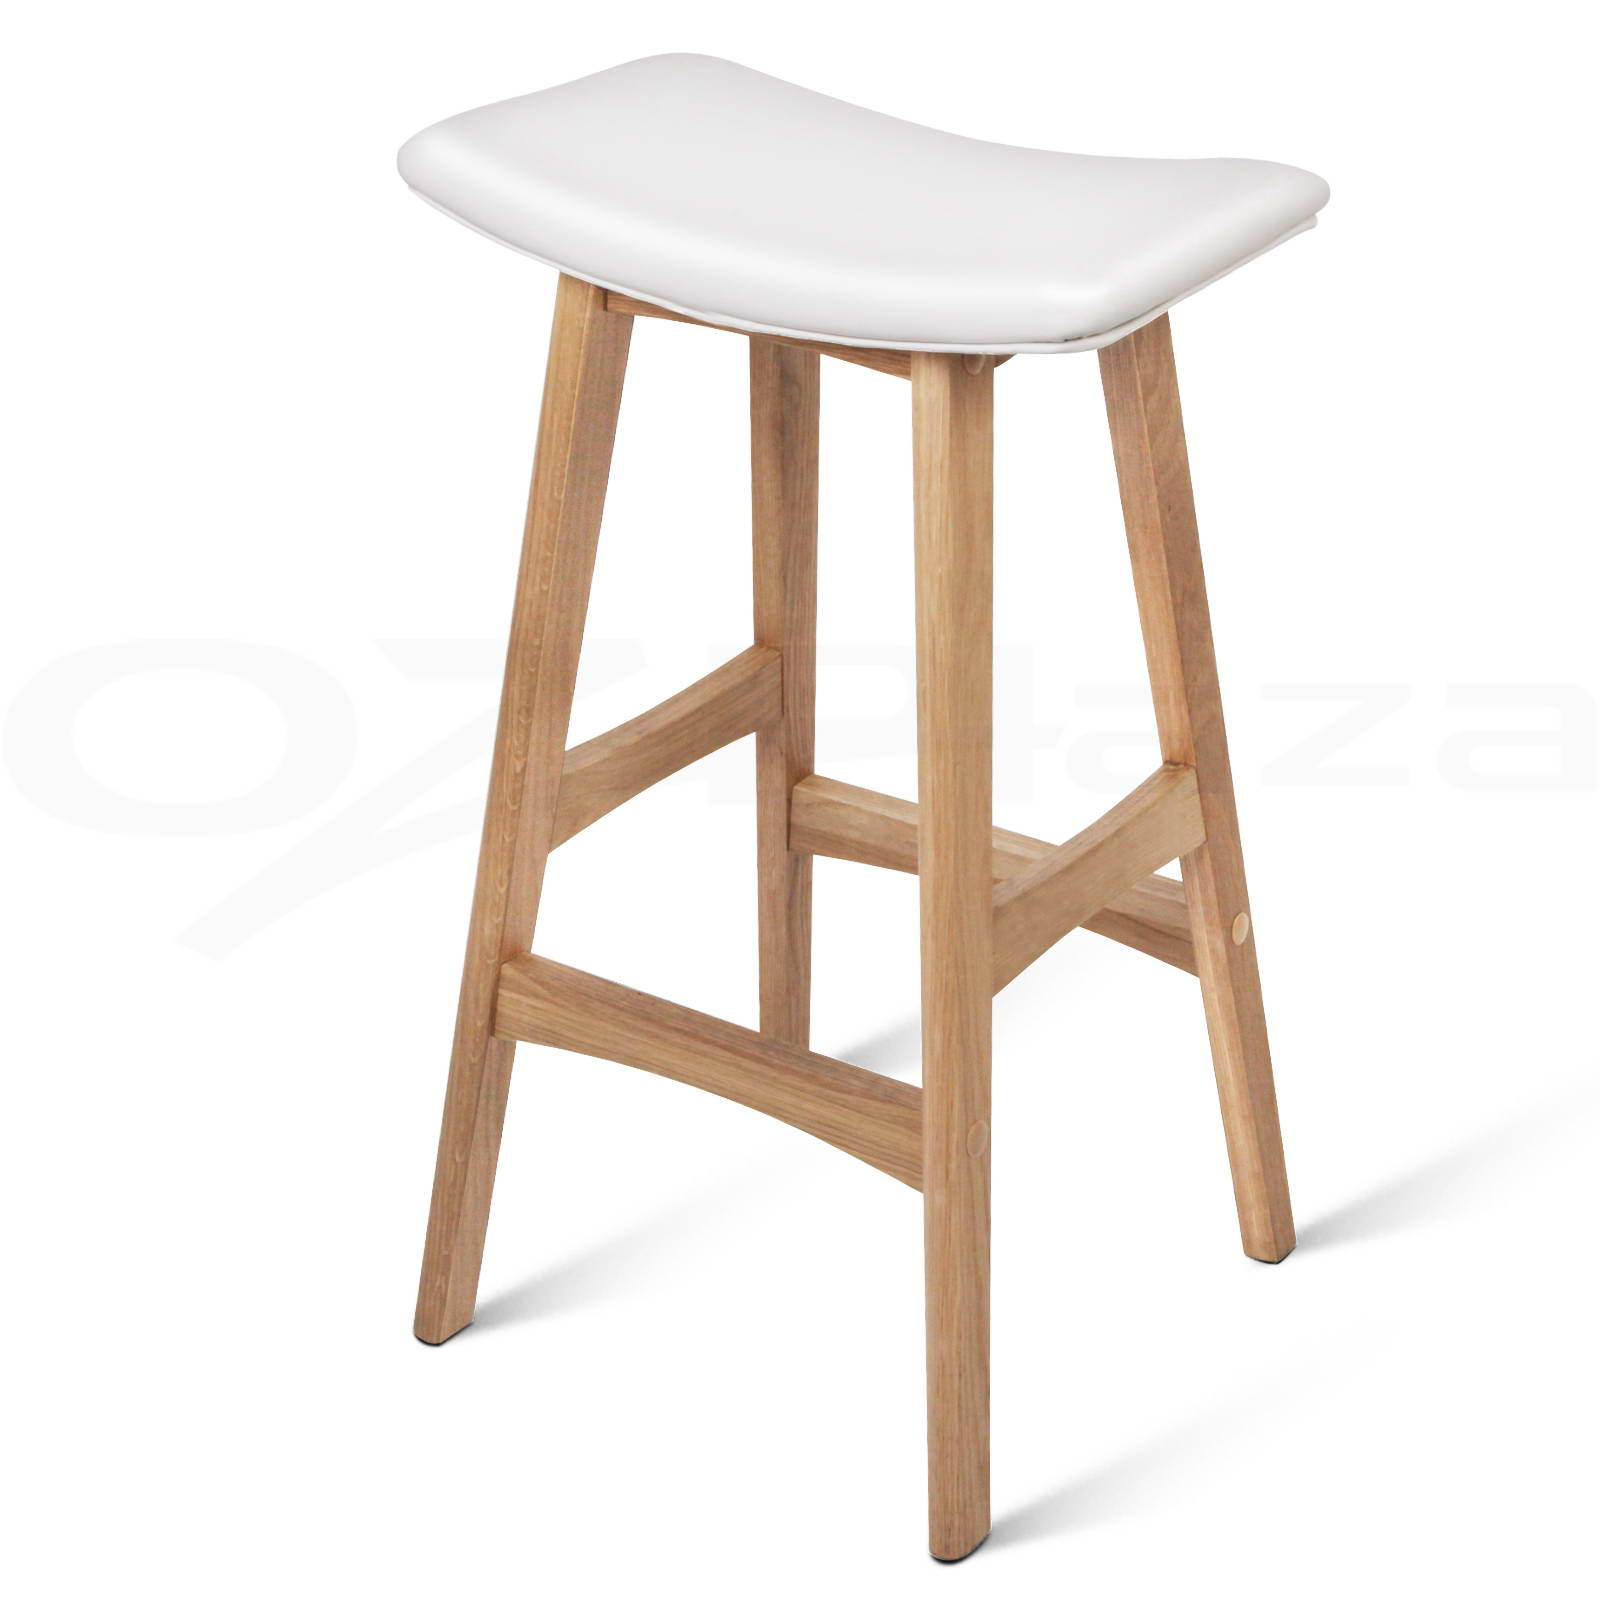 4x Oak Wood Bar Stools Wooden Dining Chairs Kitchen Side  : BA F 3629 WHX4 P09 from www.ebay.com.au size 1600 x 1600 jpeg 131kB